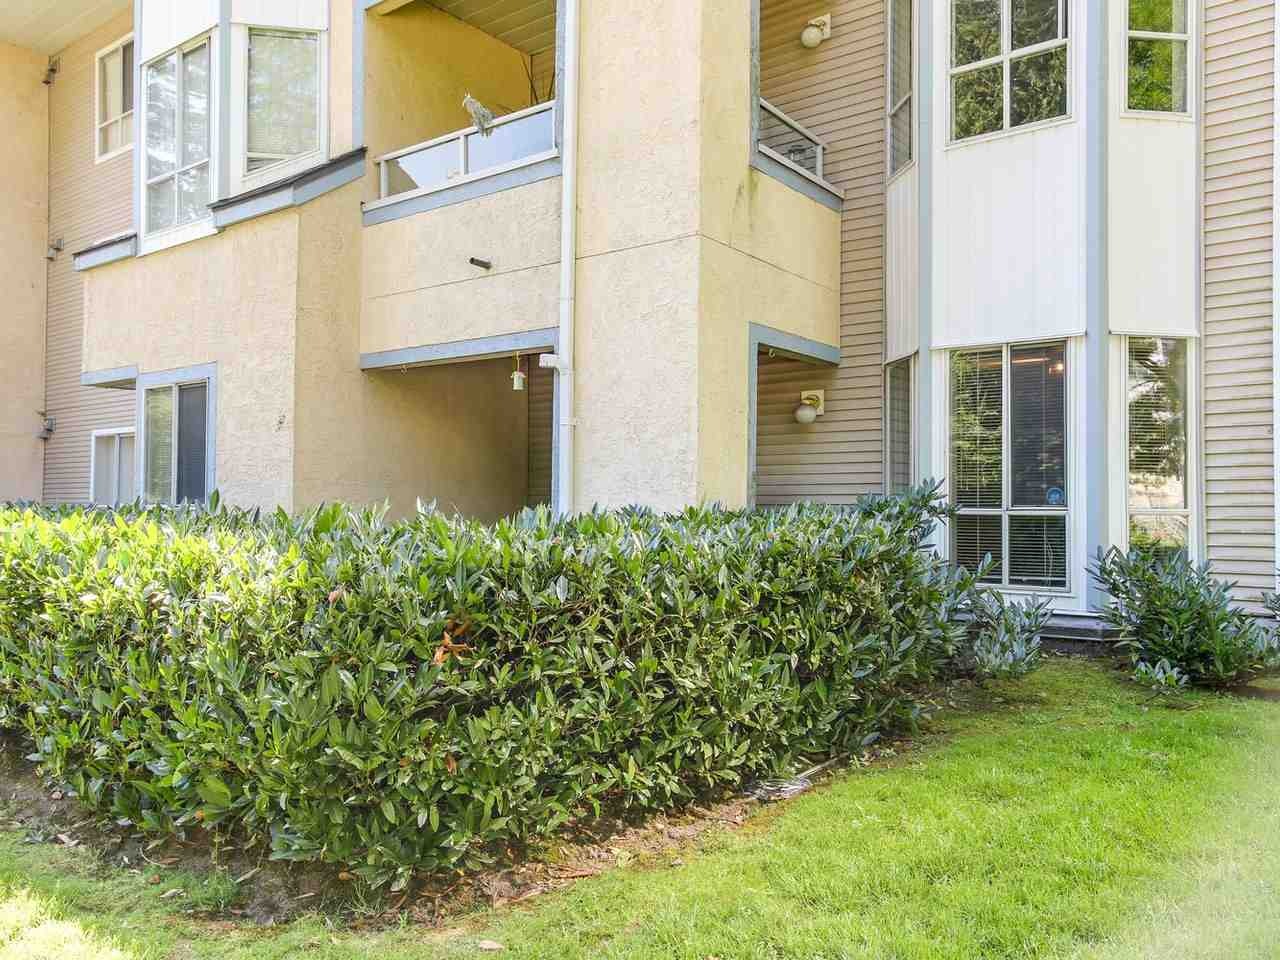 Photo 13: 105 1175 HEFFLEY Crescent in Coquitlam: North Coquitlam Condo for sale : MLS(r) # R2185533